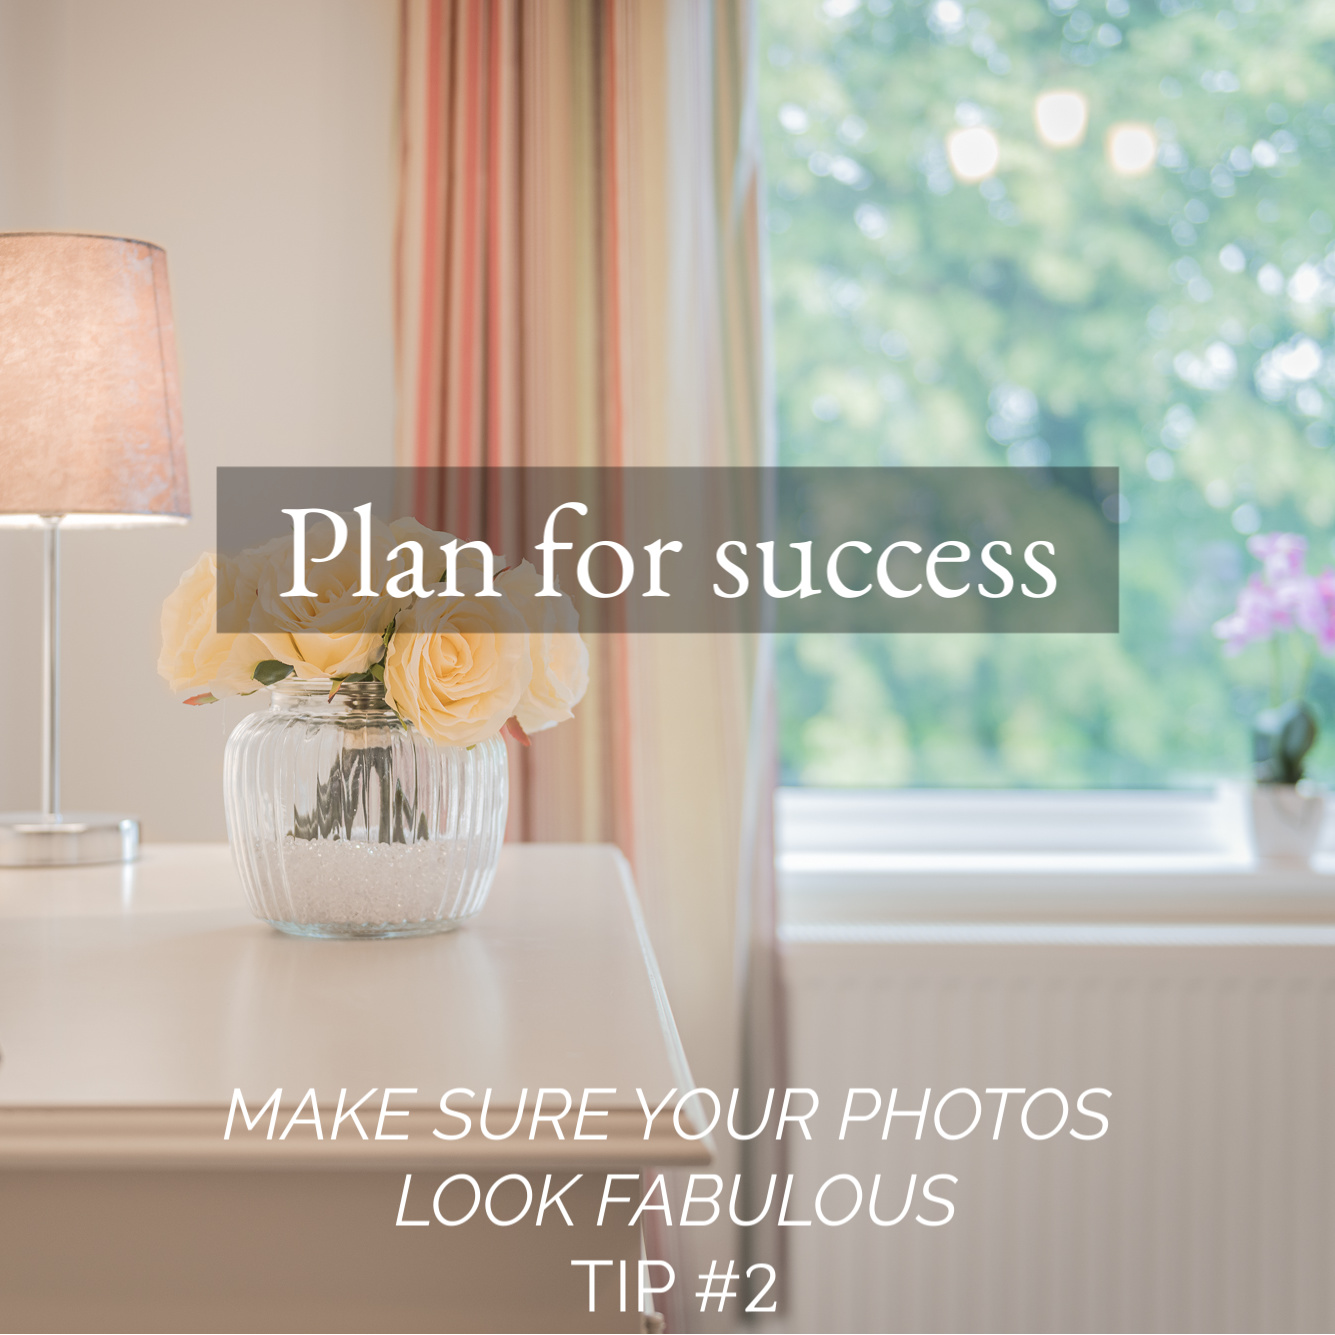 tg2-plan-for-success